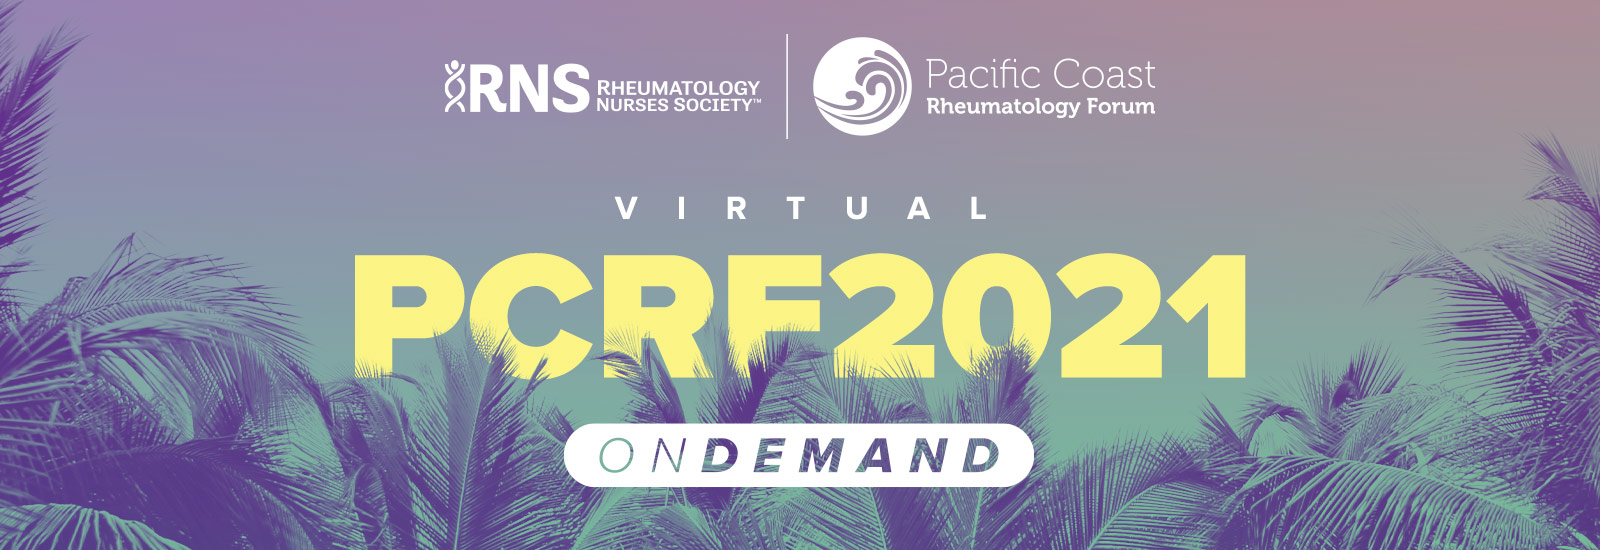 2021 RNS Pacific Coast Rheumatology Forum OnDemand